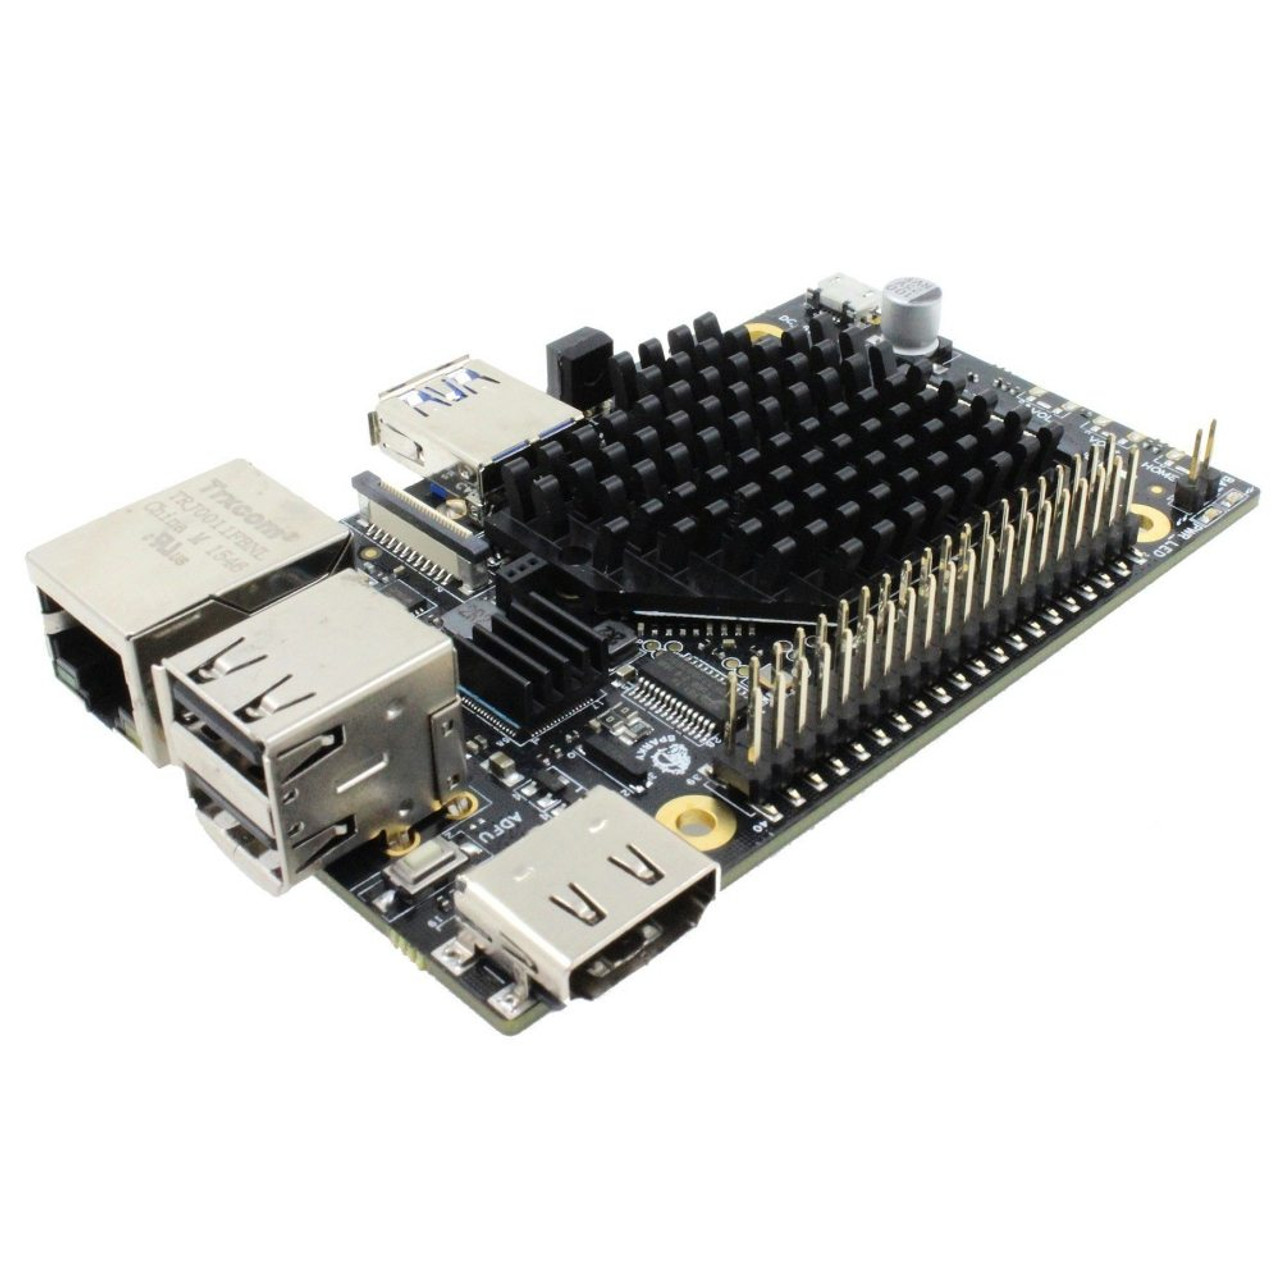 Sparky SBC Motherboard